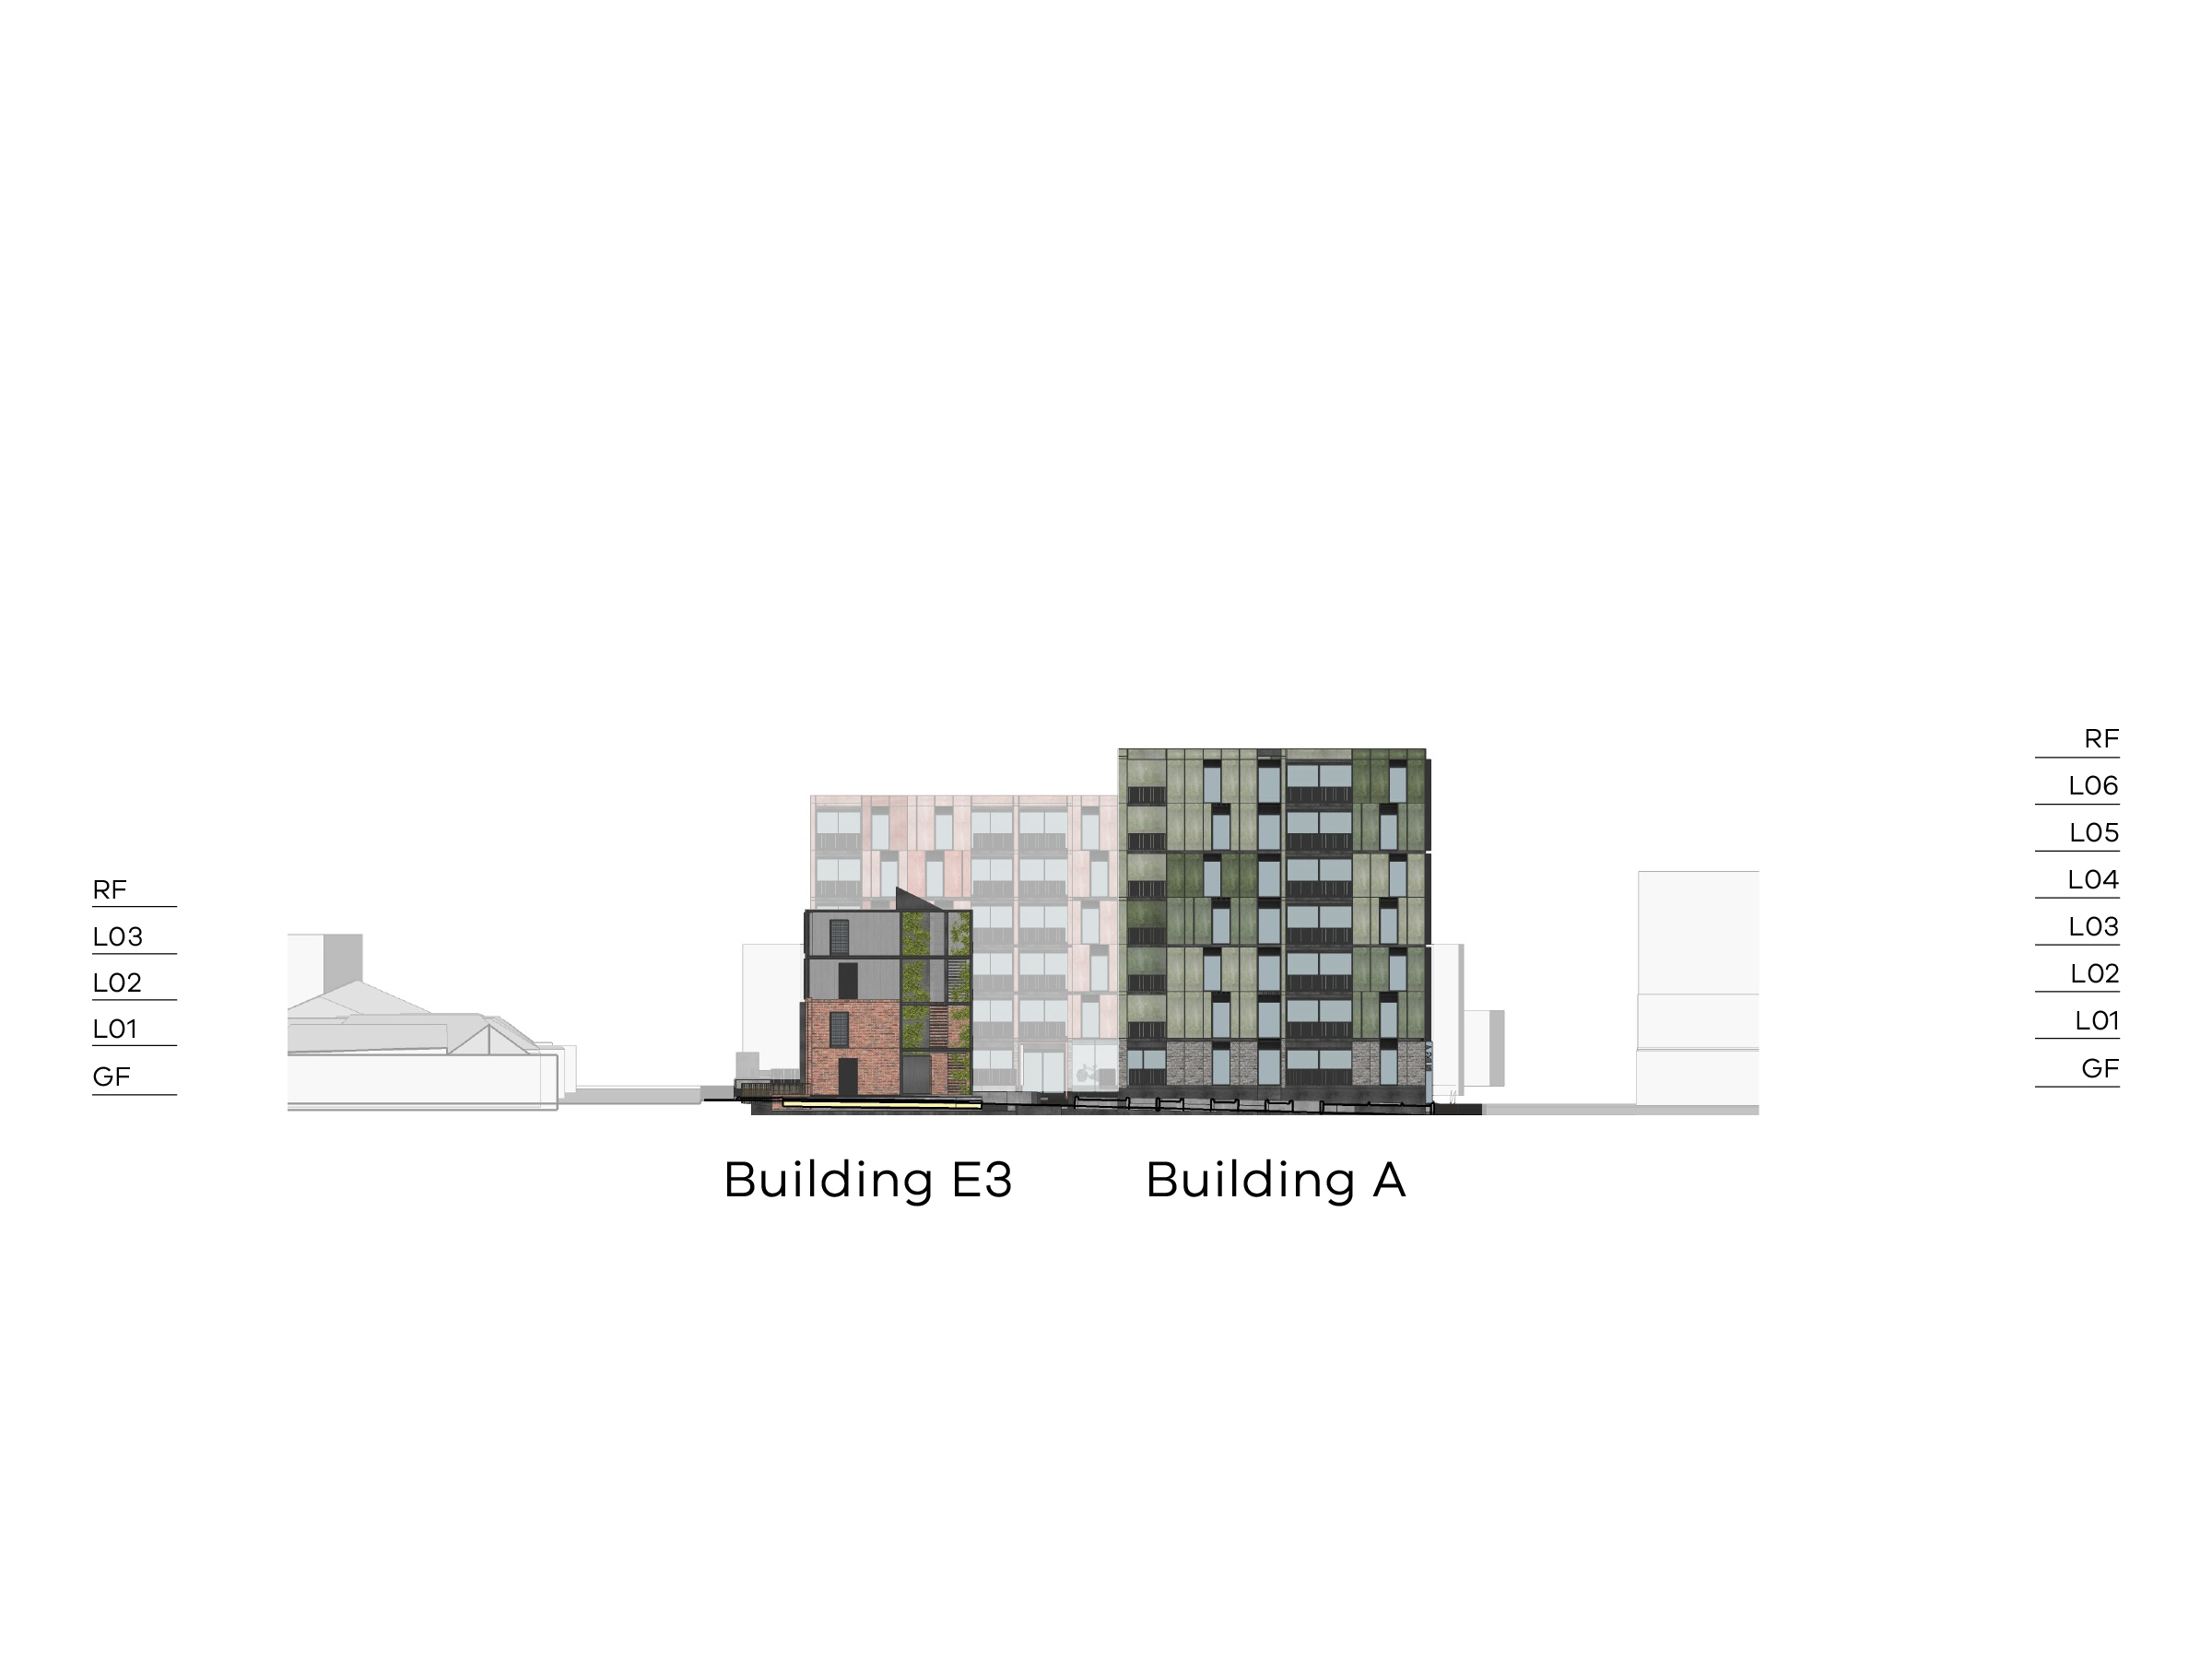 Diagram showing the heights of buildings A and E3 as seen from the central open space looking south. Building A has a ground floor, level 1-6 and a flat roof. Building E3 has a ground floor, level 1-3 and a flat roof.